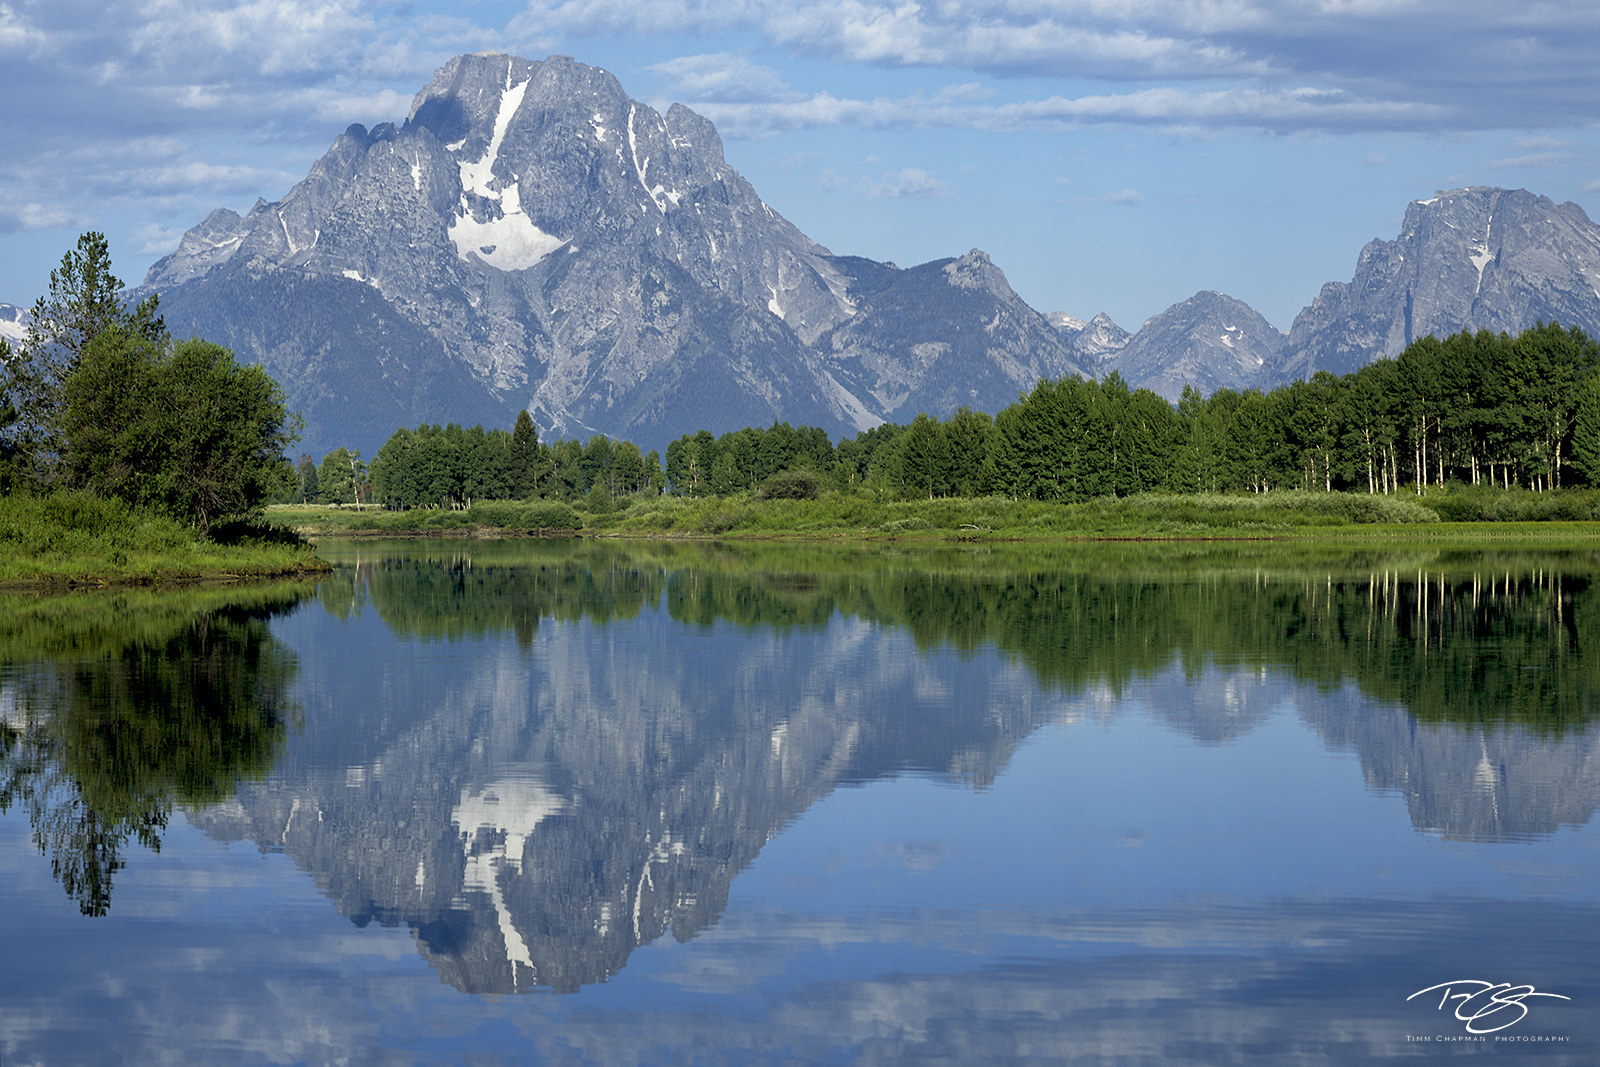 A bend in the Snake River provides a beautiful reflection of the Tetons' Mt Moran